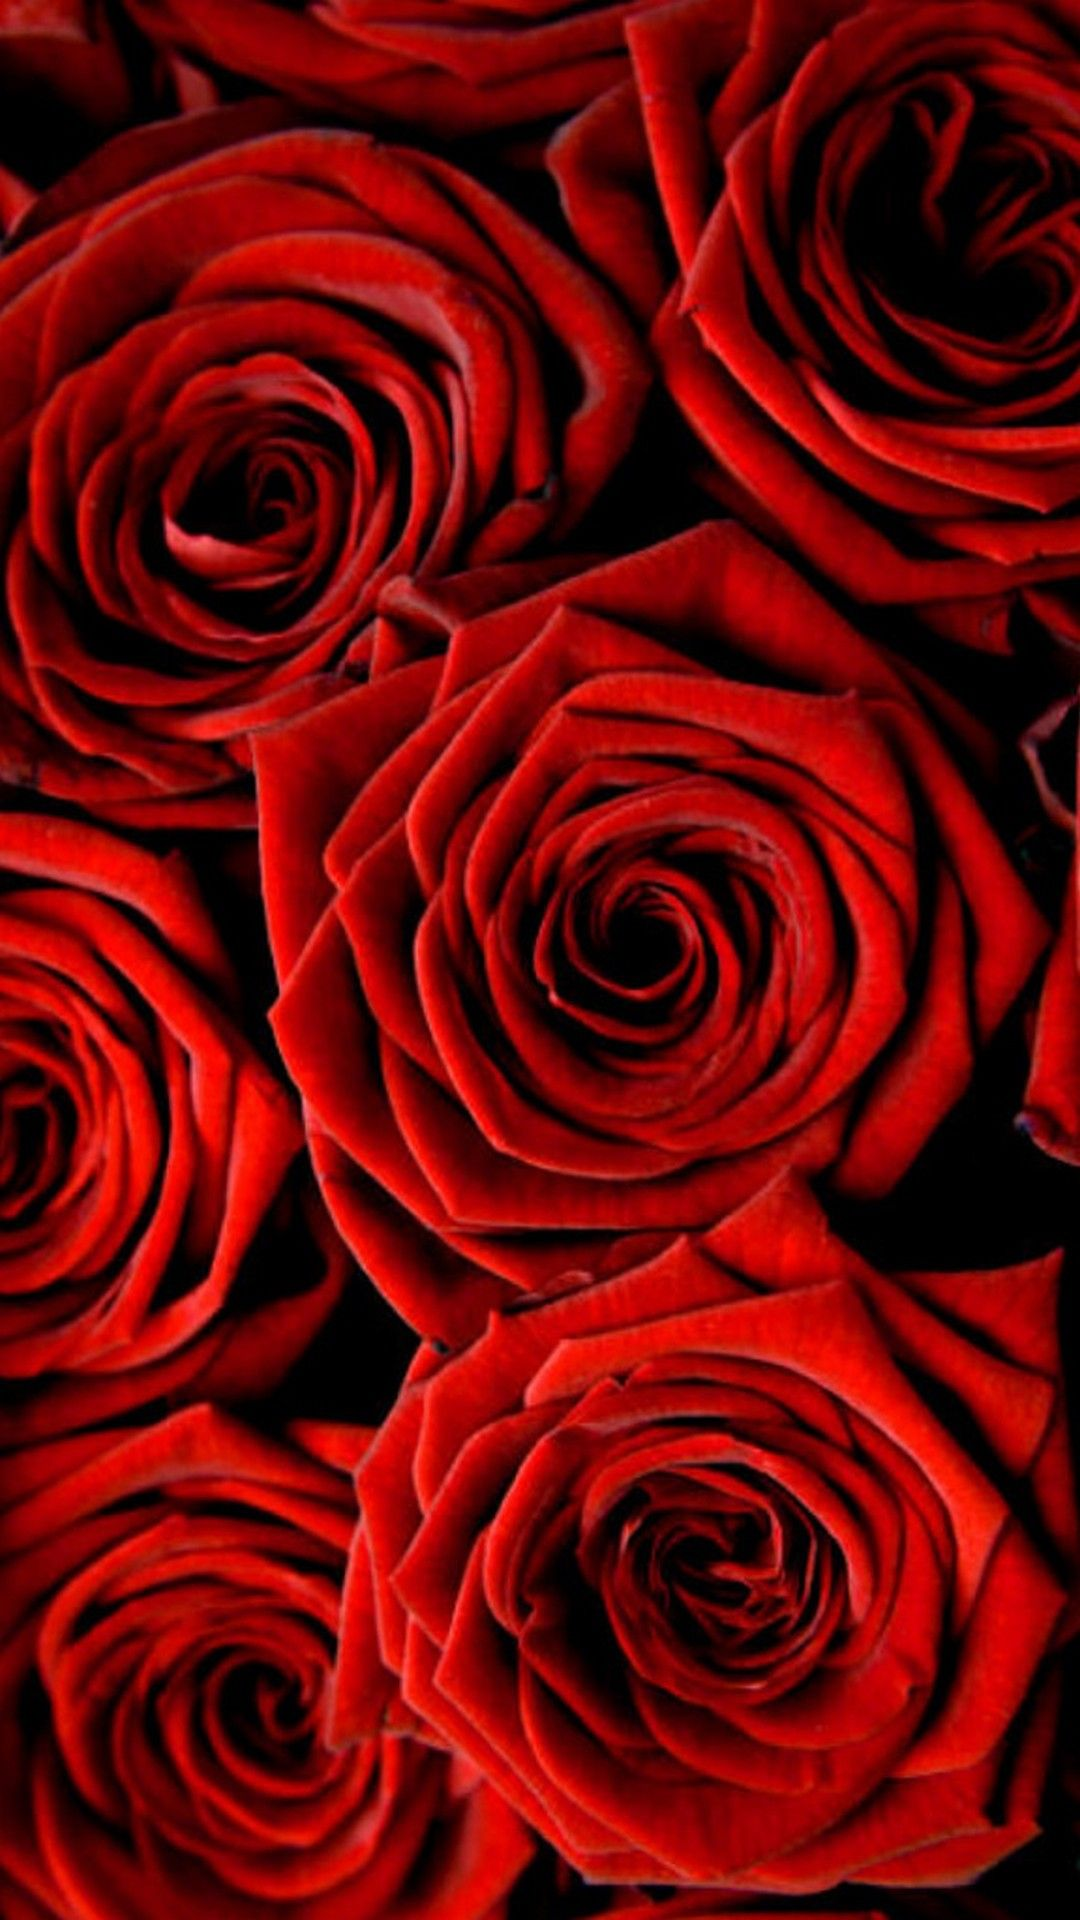 Rose Wallpaper For iPhone Best HD Wallpapers Flower